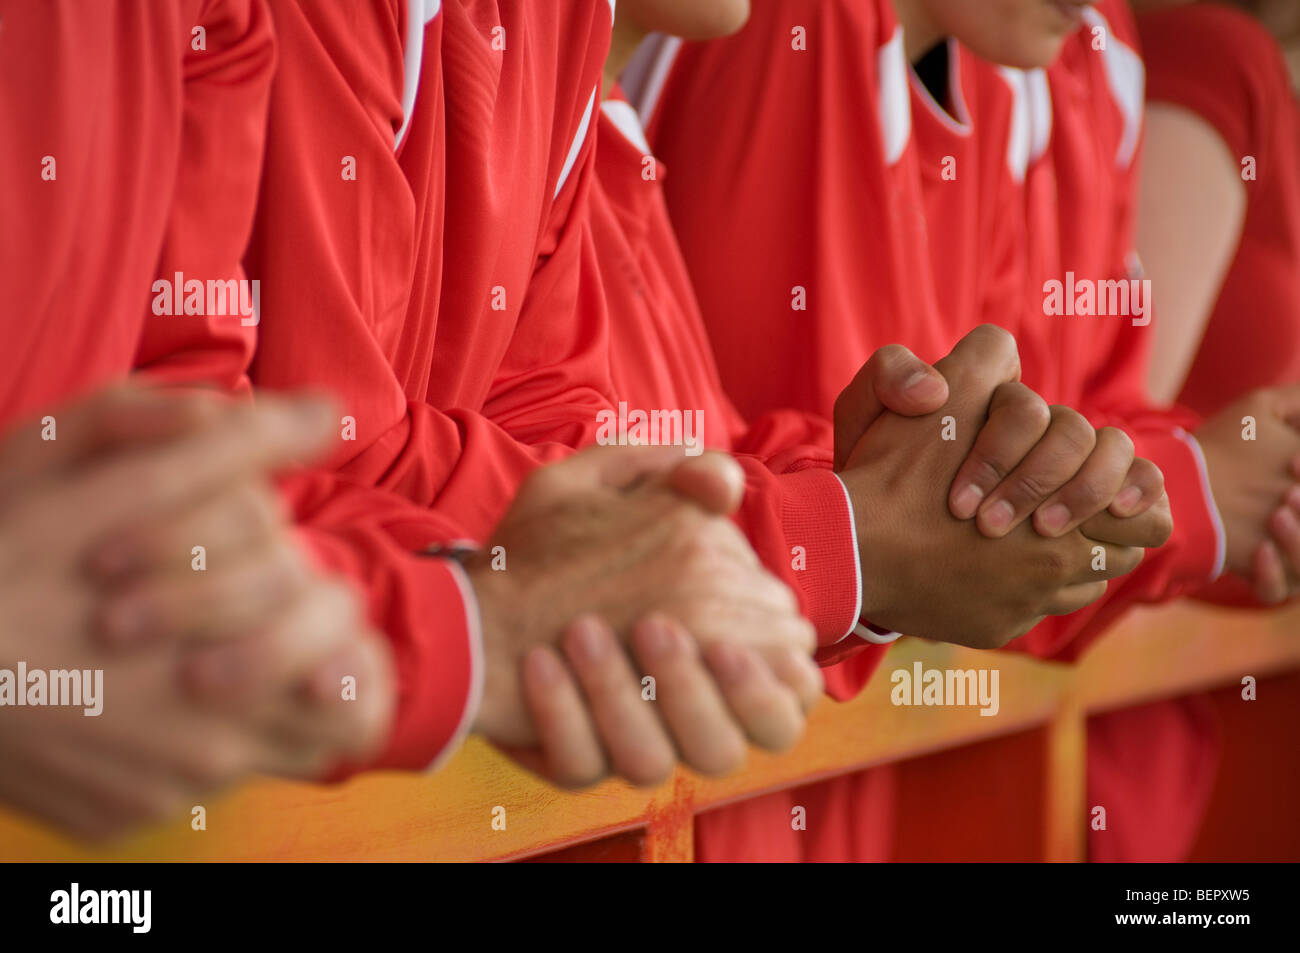 Close up of football supporters hands - Stock Image